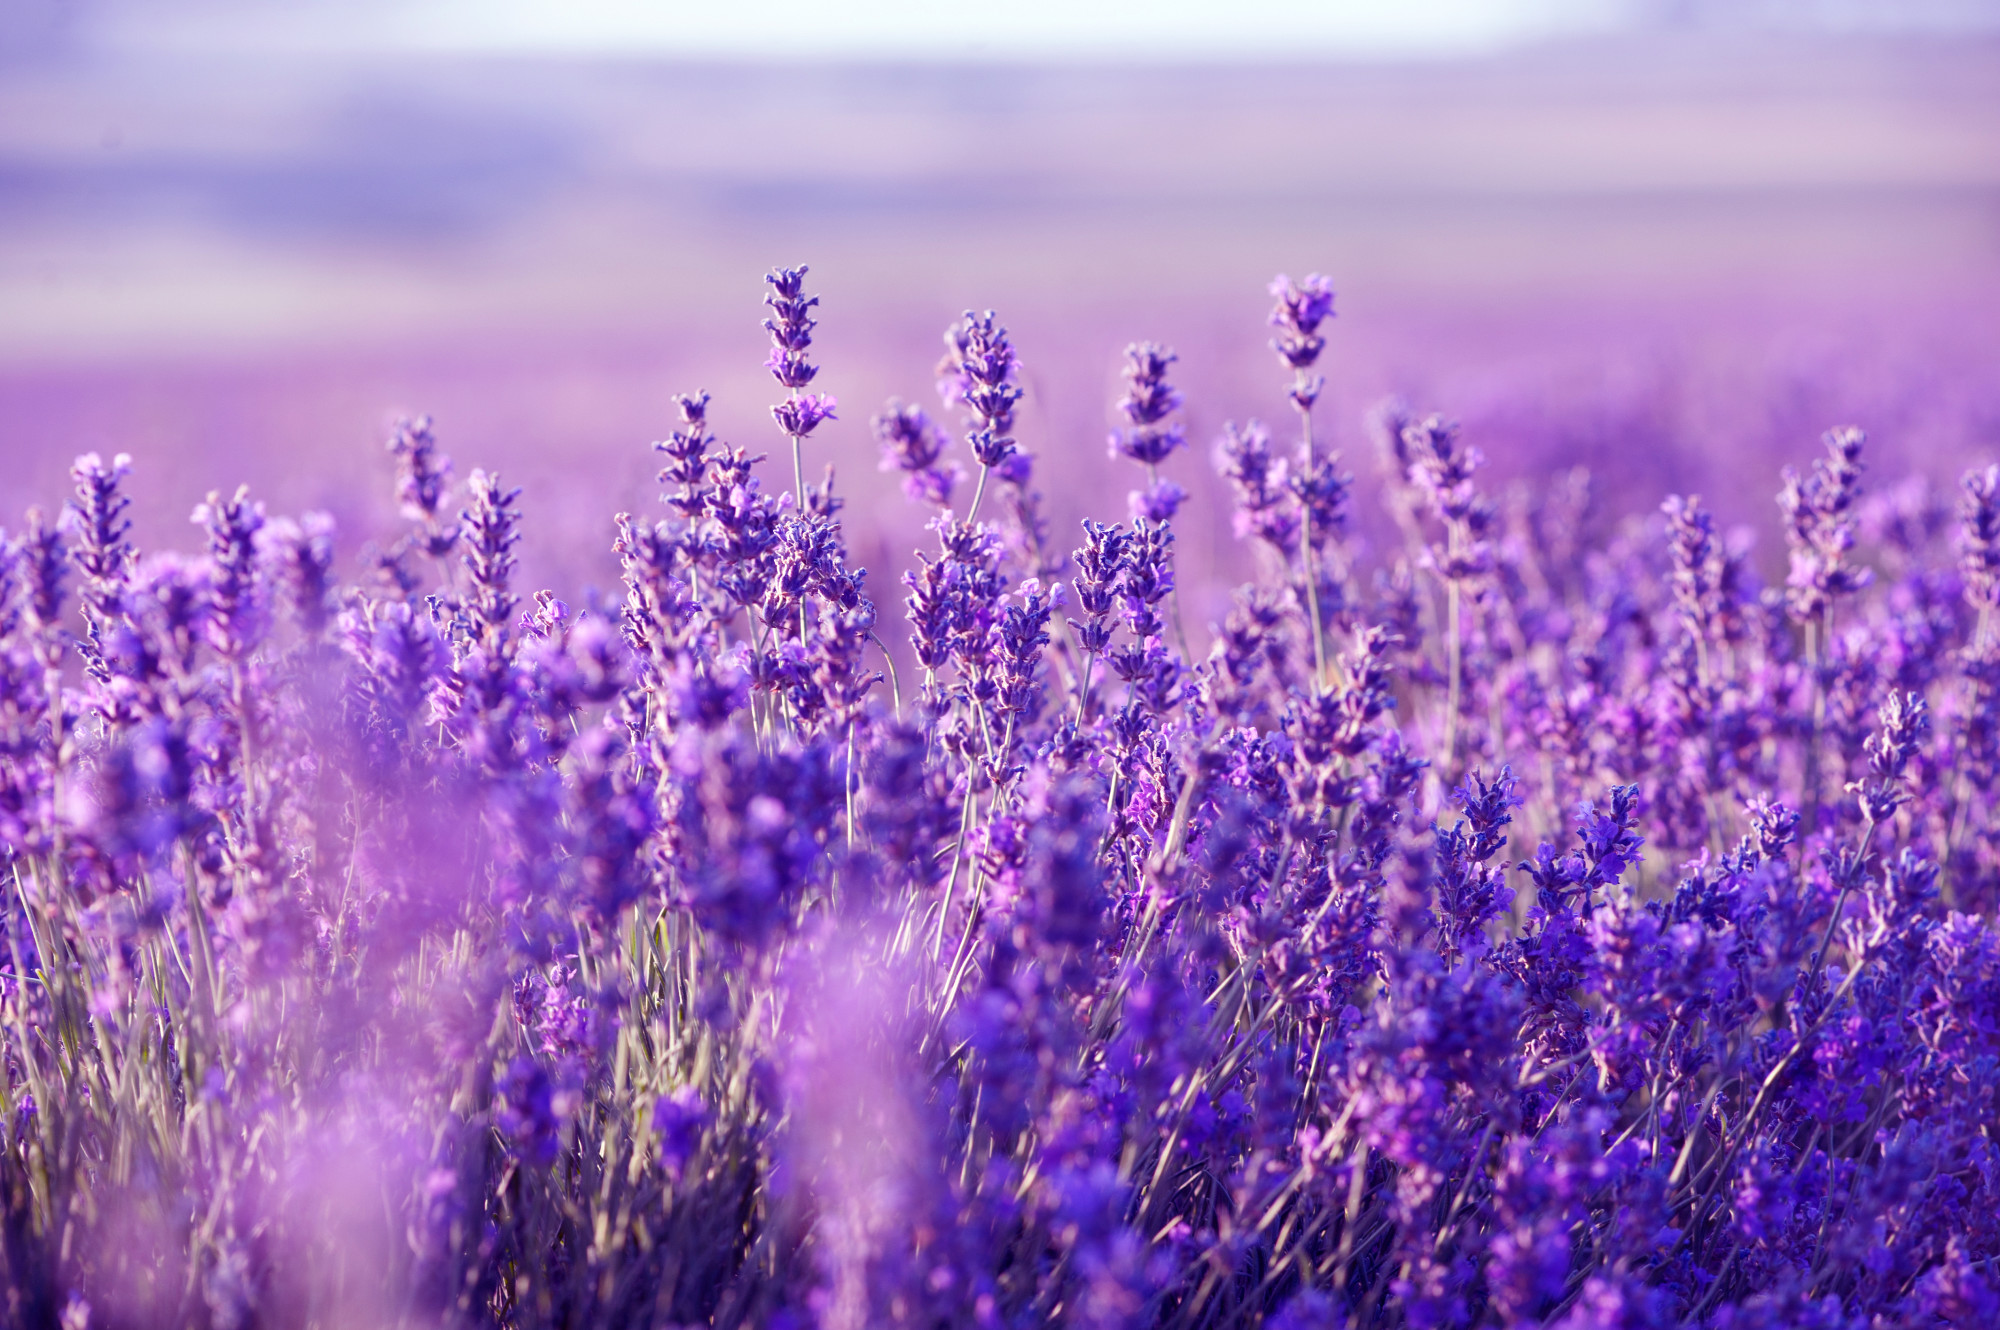 Lavender Wallpapers High Quality Download 2000x1330